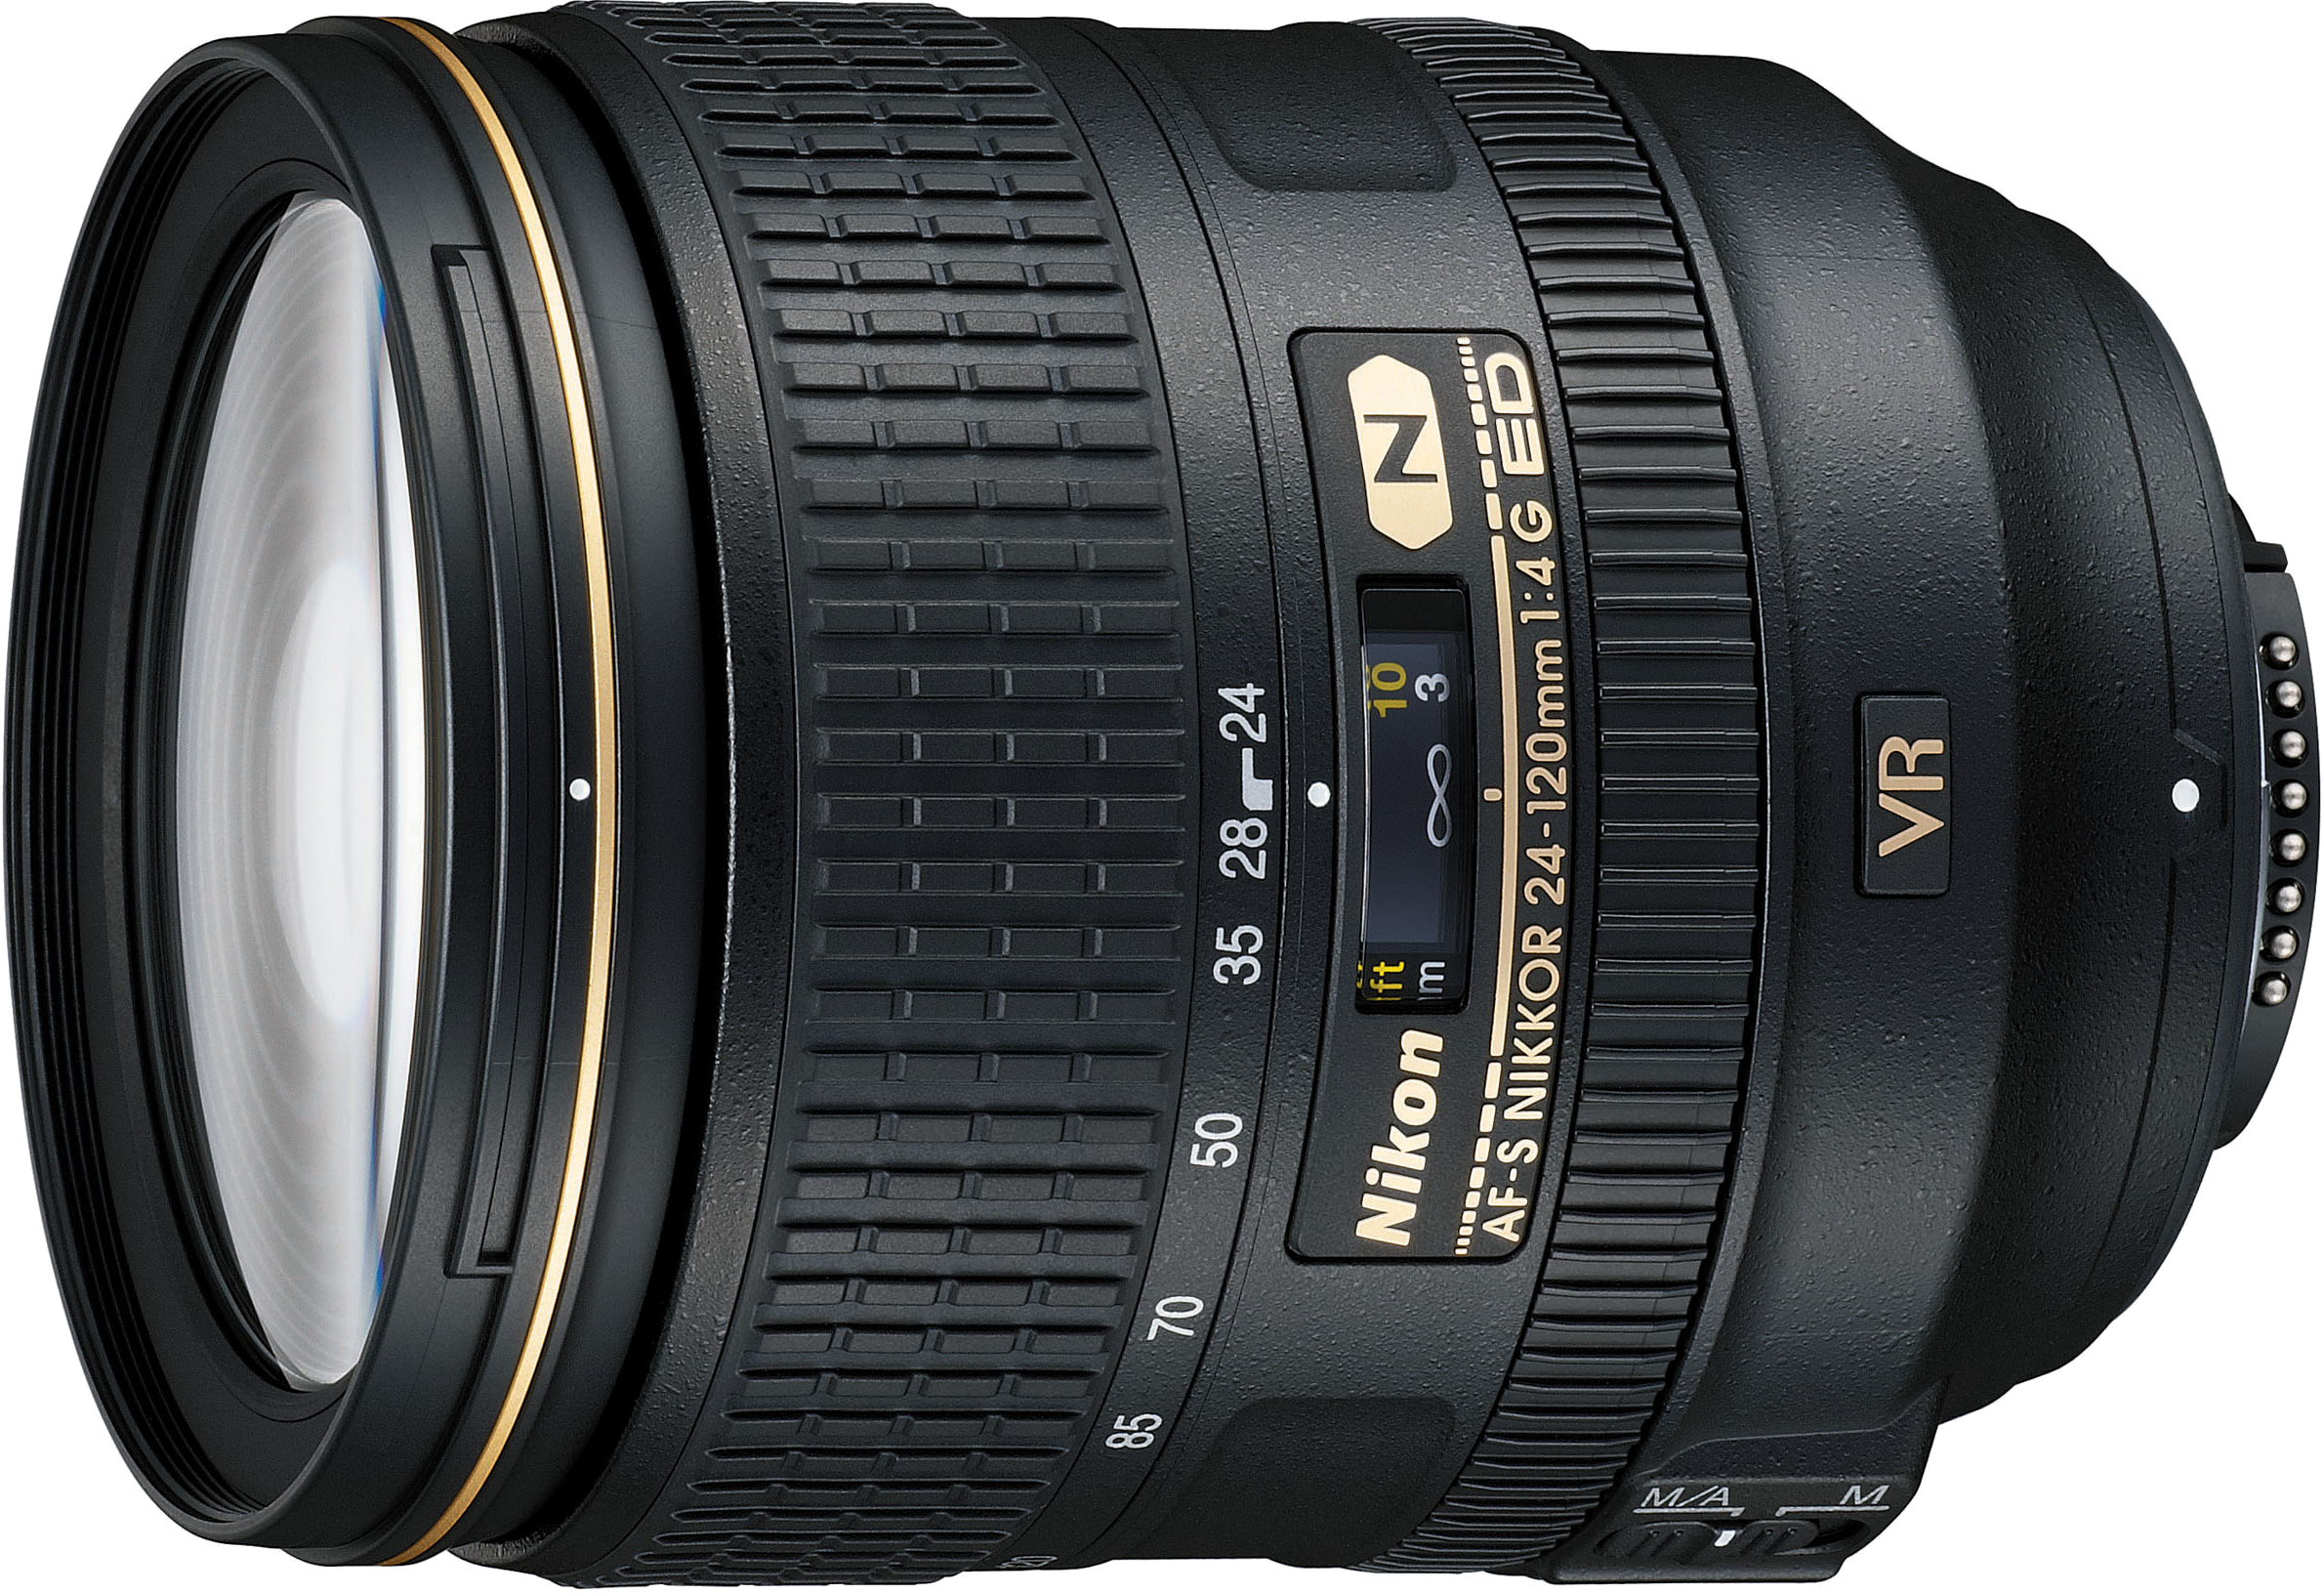 A versatile medium focal length lens with vibration reduction and a constant f/4.